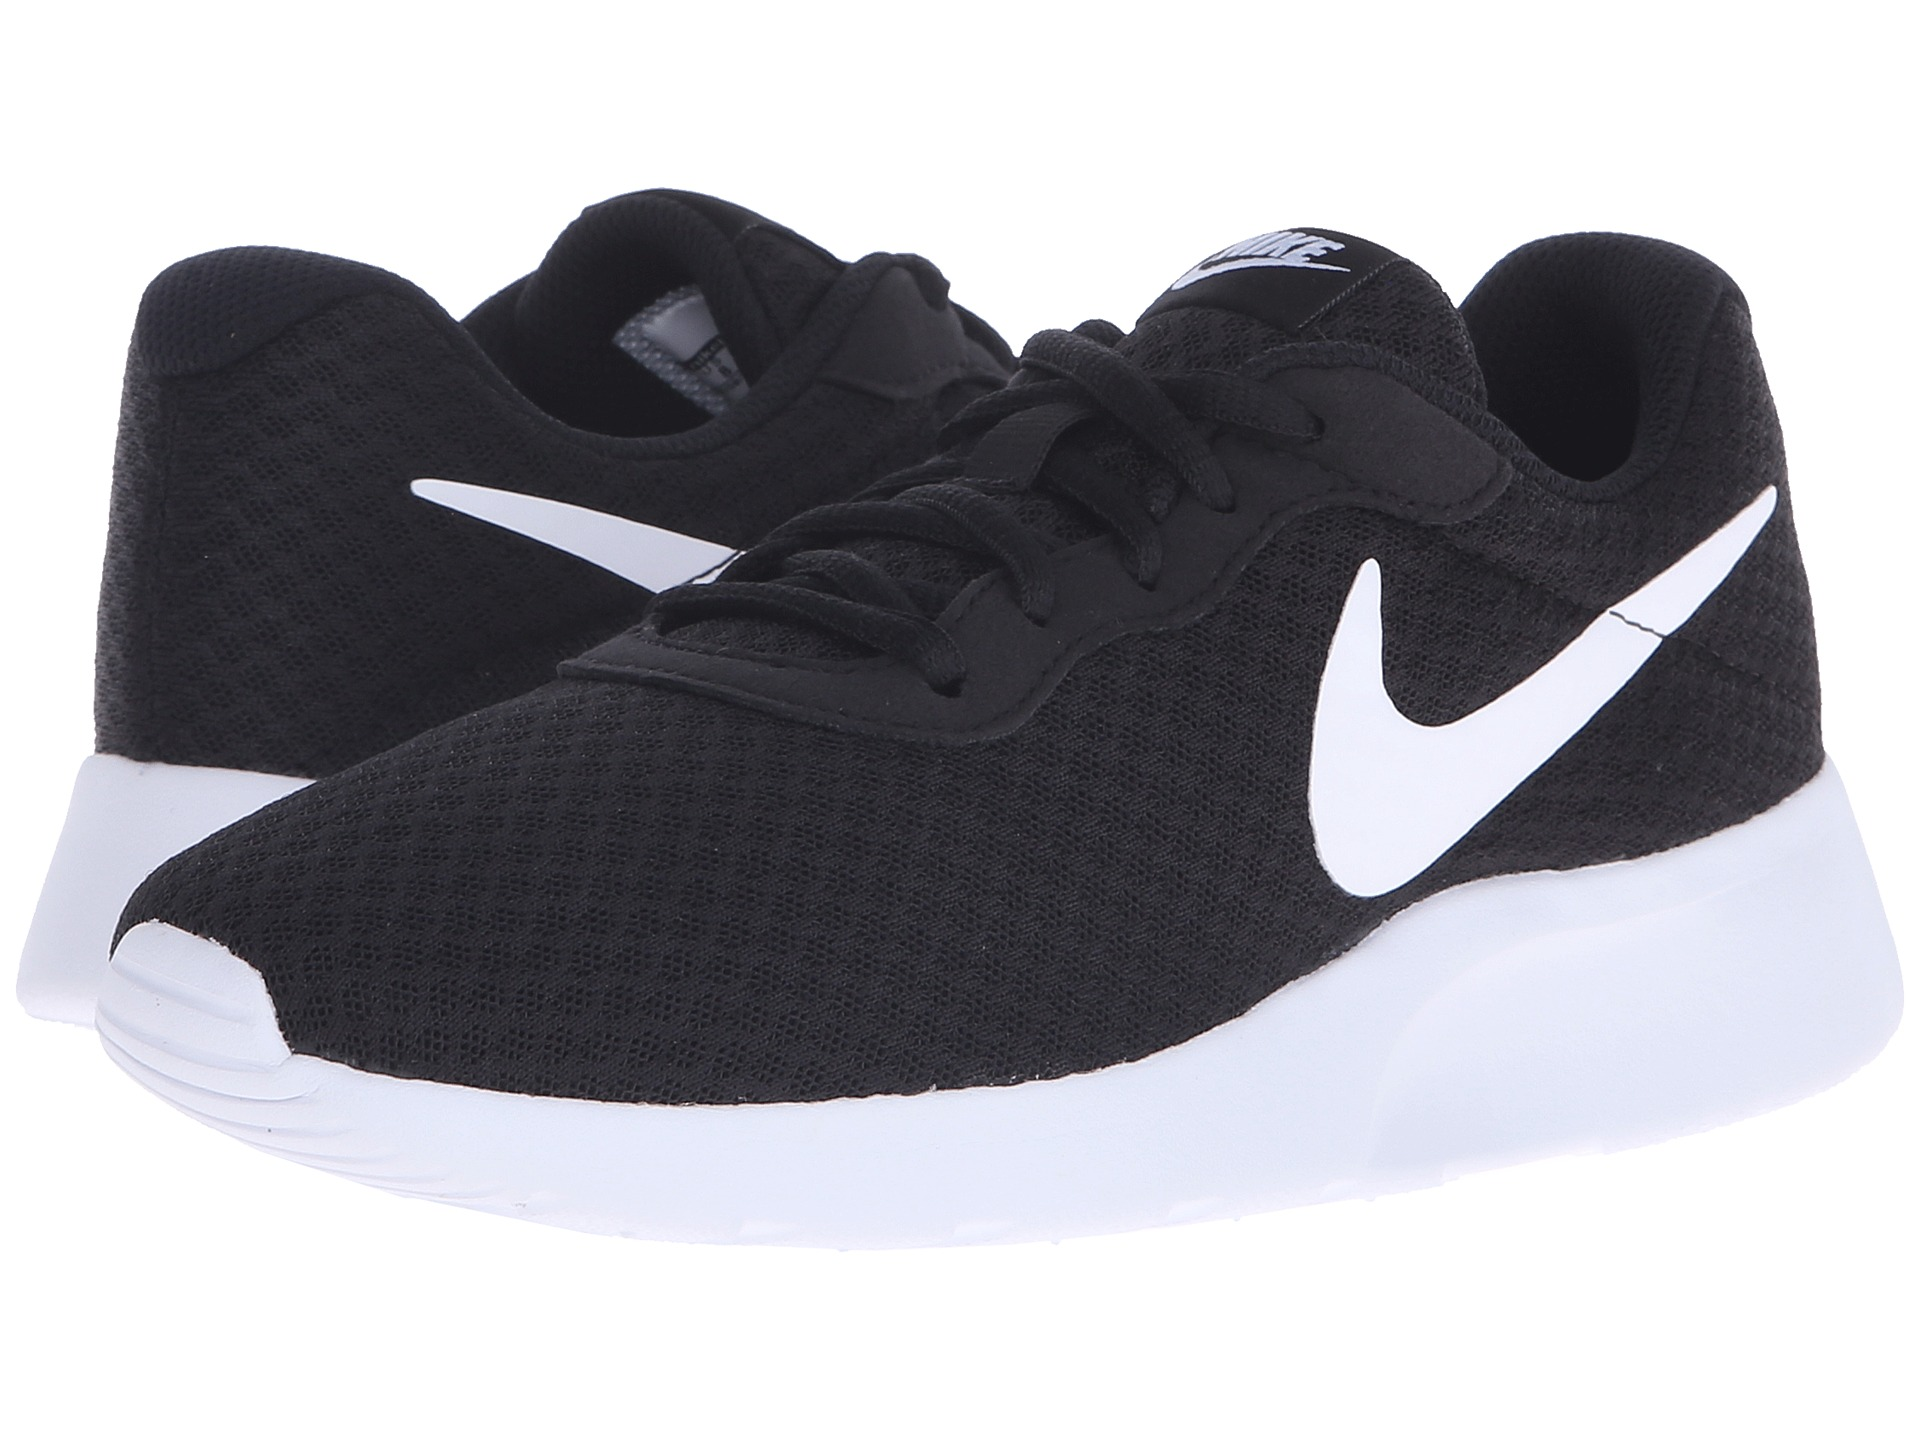 Nike Man Shoes Flat